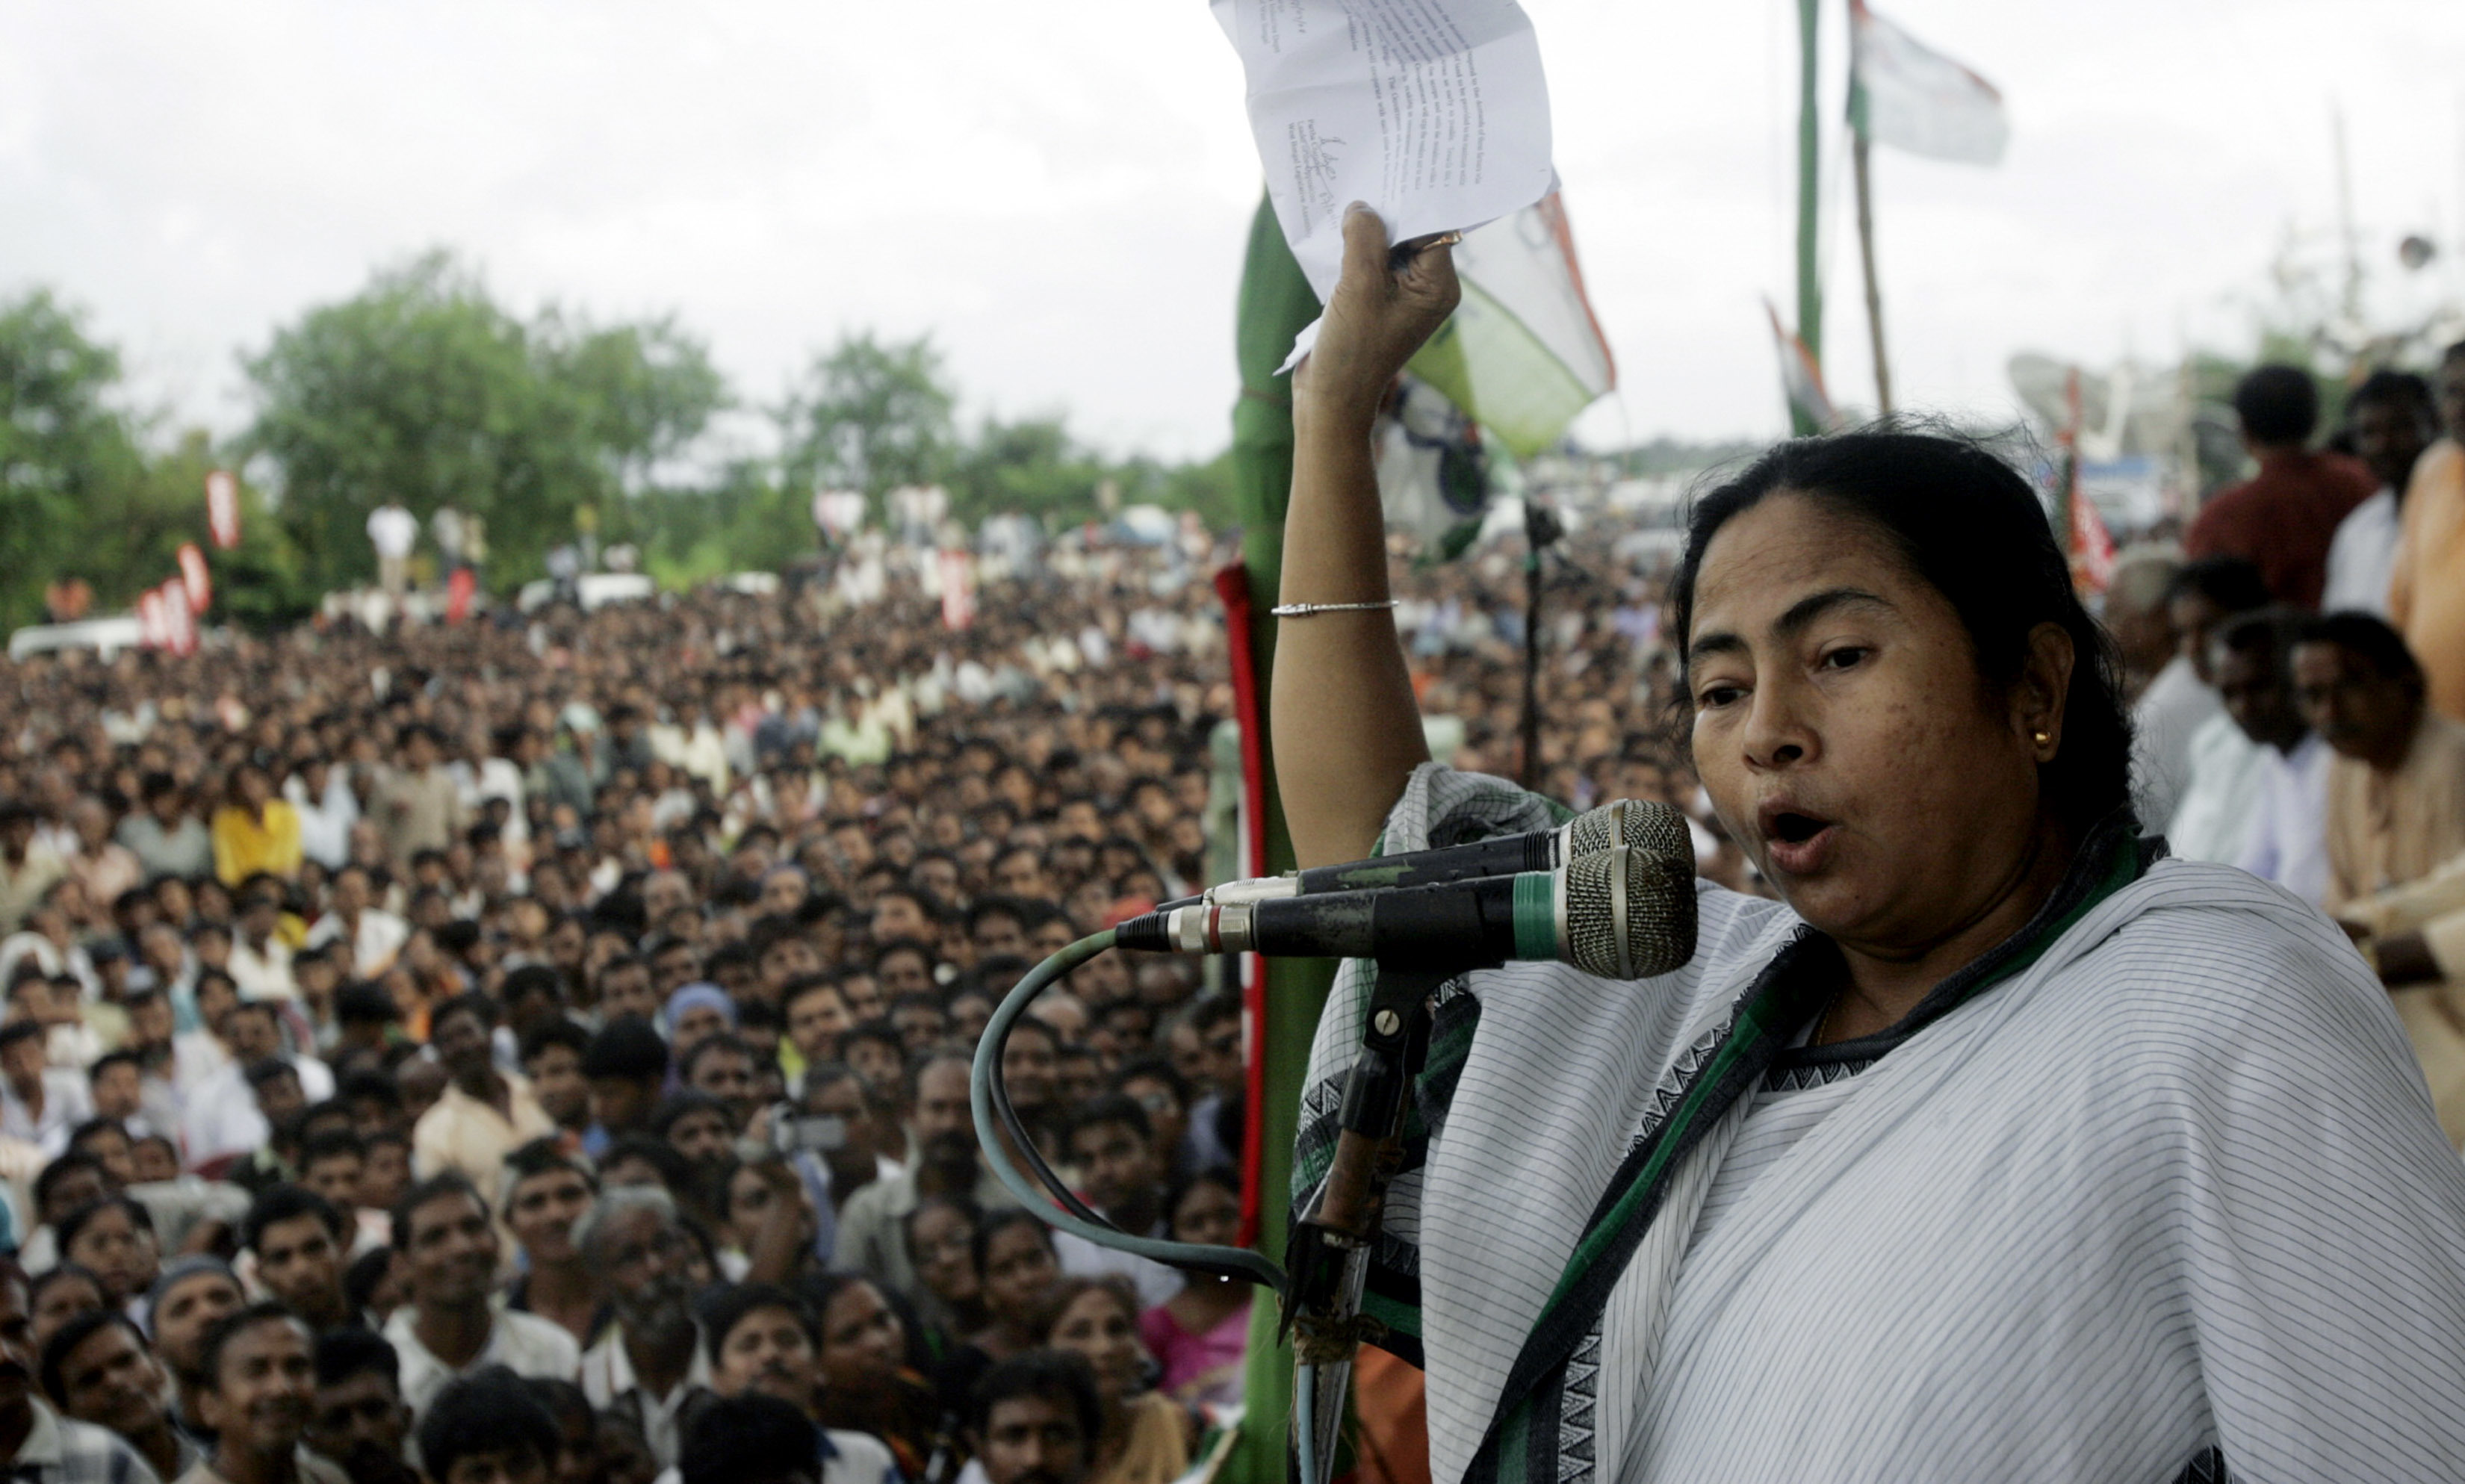 Mamata Banerjee leveraged the agitations against land acquisition in Singur and Nandigram to break up the Left Front's 'party-society'. Photo credit: AFP